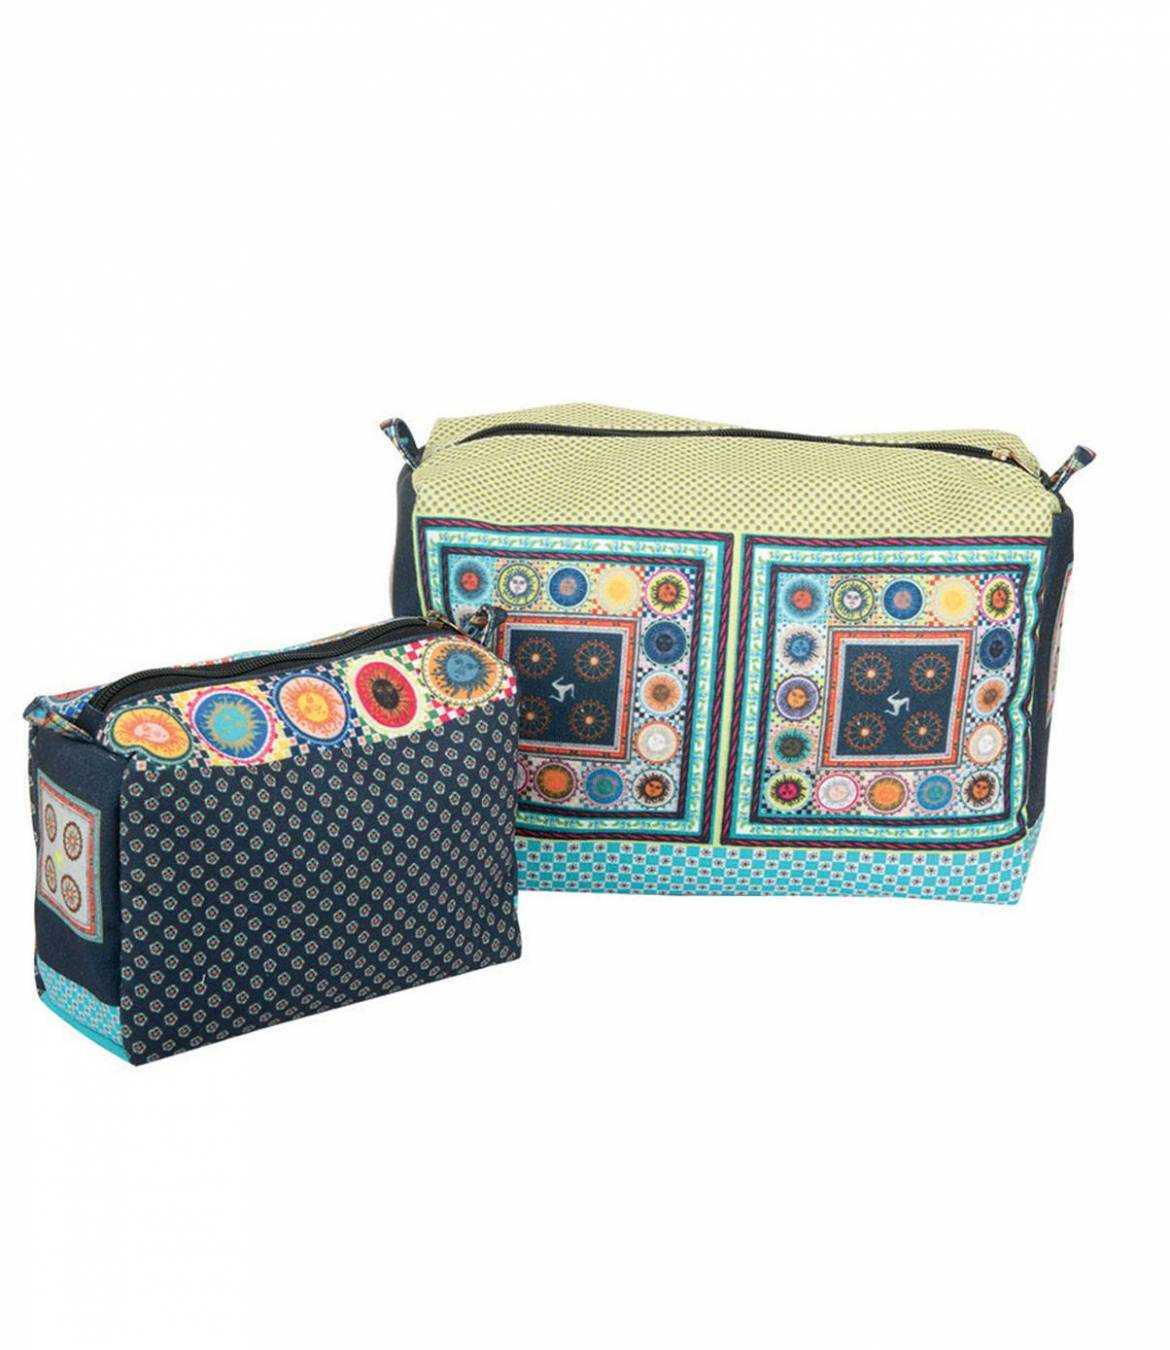 COSMETIC Women's Polyester Pouch 25x15 cm / 15x12 cm Storiatipic - 2